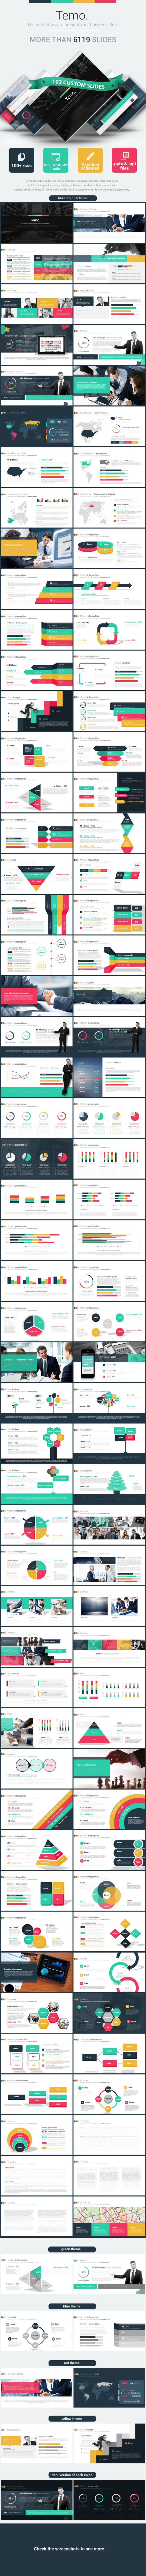 Temo Powerpoint Presentation Template PowerPoint Template / Theme / Presentation / Slides / Background / Power Point #powerpoint #template #theme